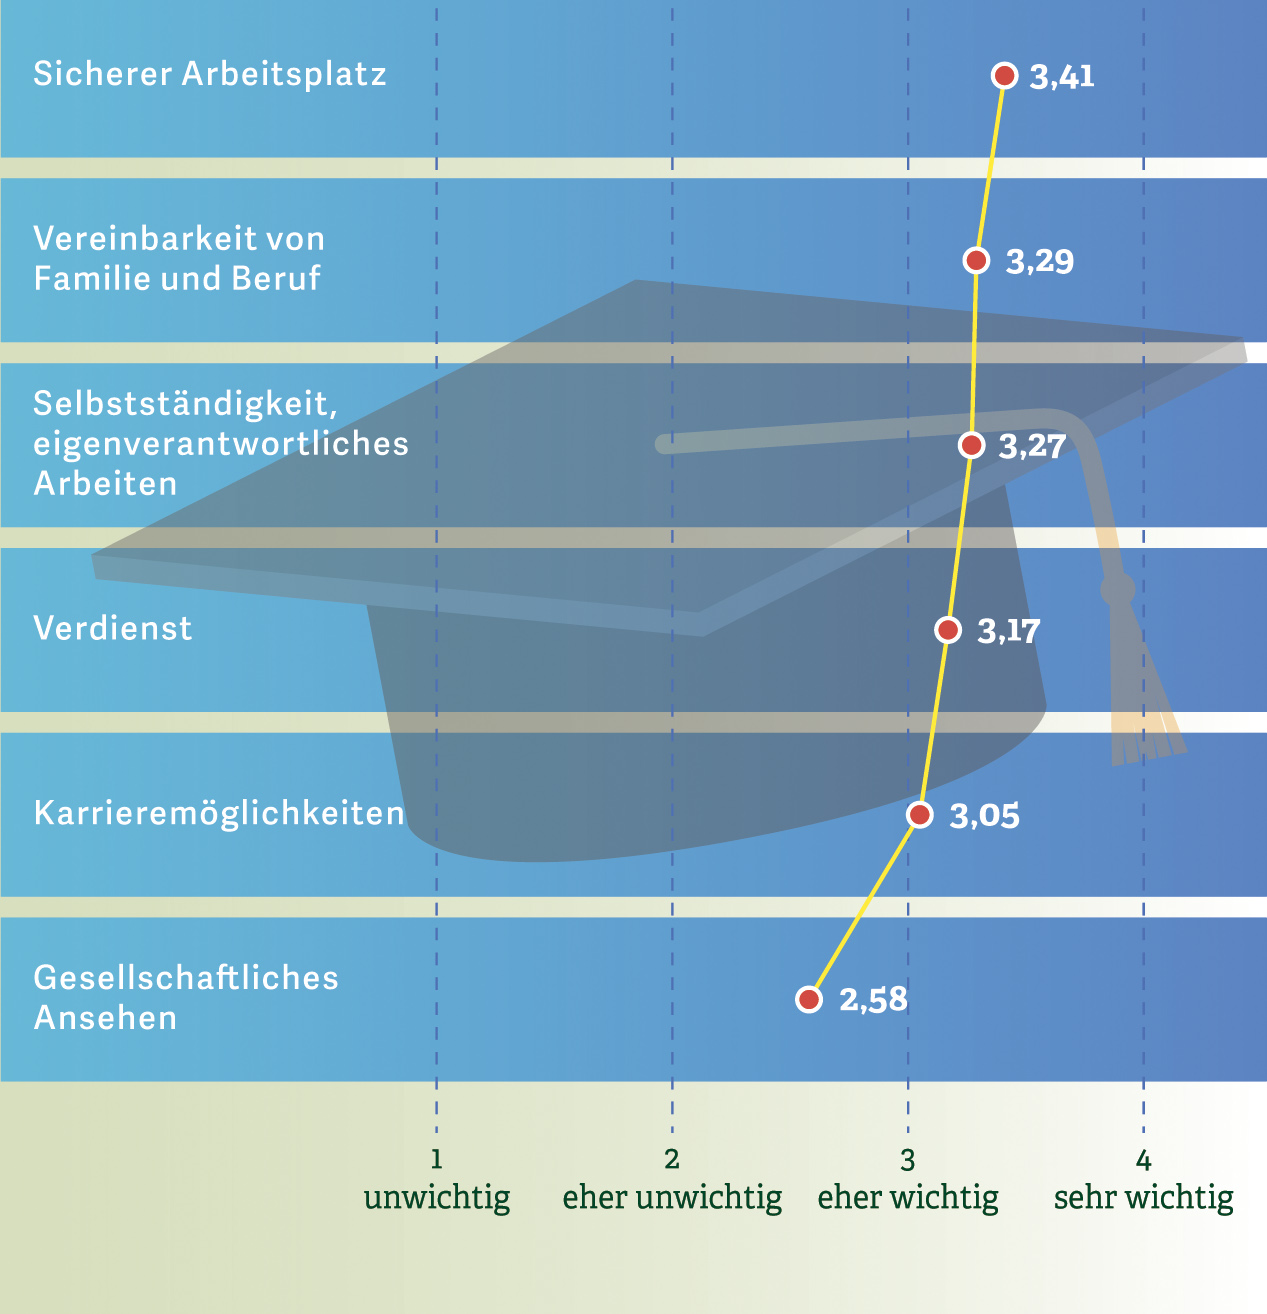 Grafik zu den Motivationen für ein Studium. Quelle: EY, Capital IQ 2008, 5.000 befragte Studenten